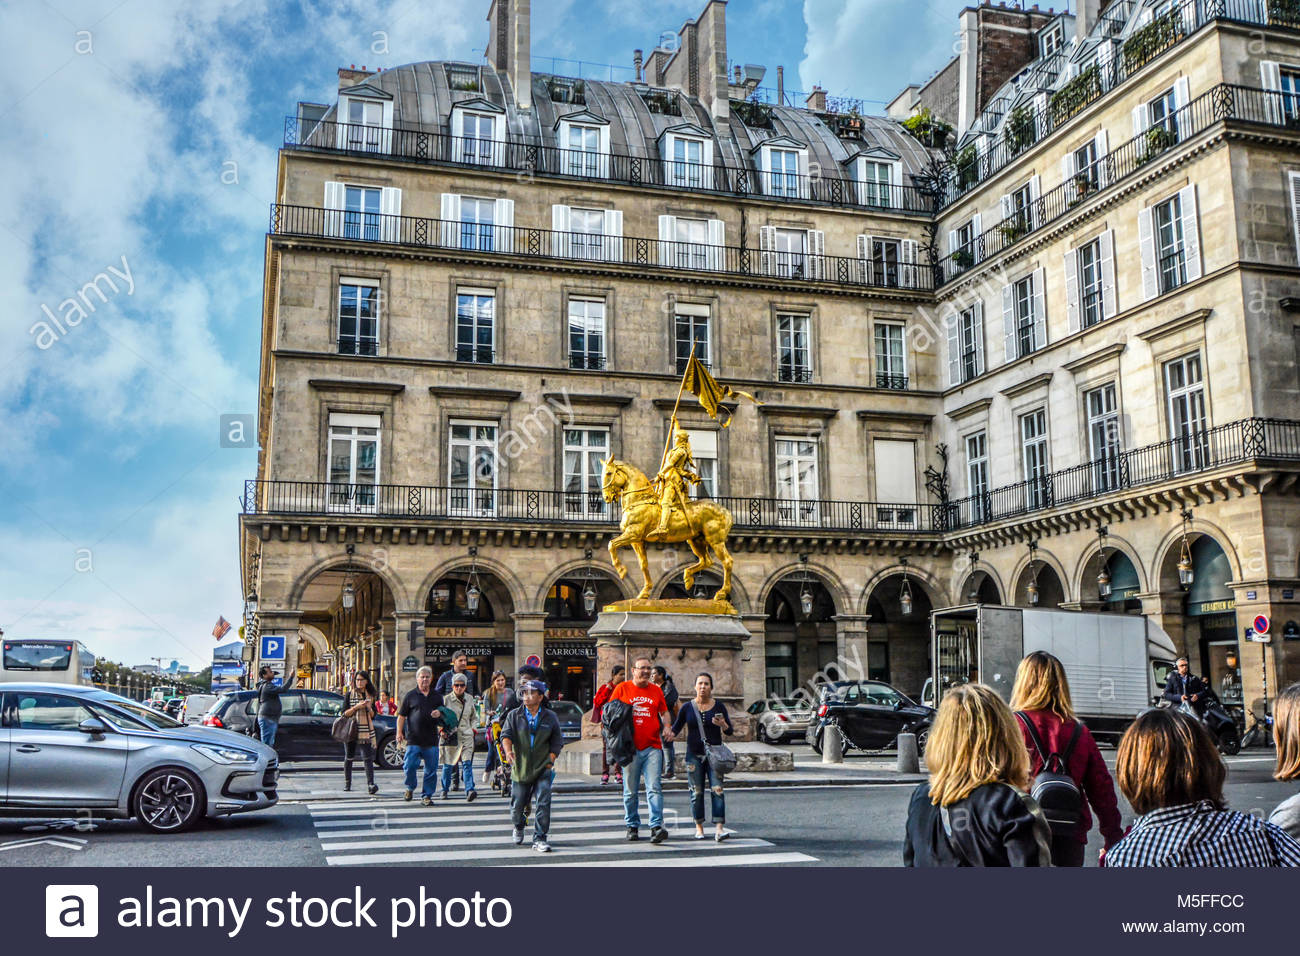 Jeanne d'Arc, a gilded bronze equestrian sculpture of Joan of Arc by Emmanuel Frémiet in the Place des - Stock Image